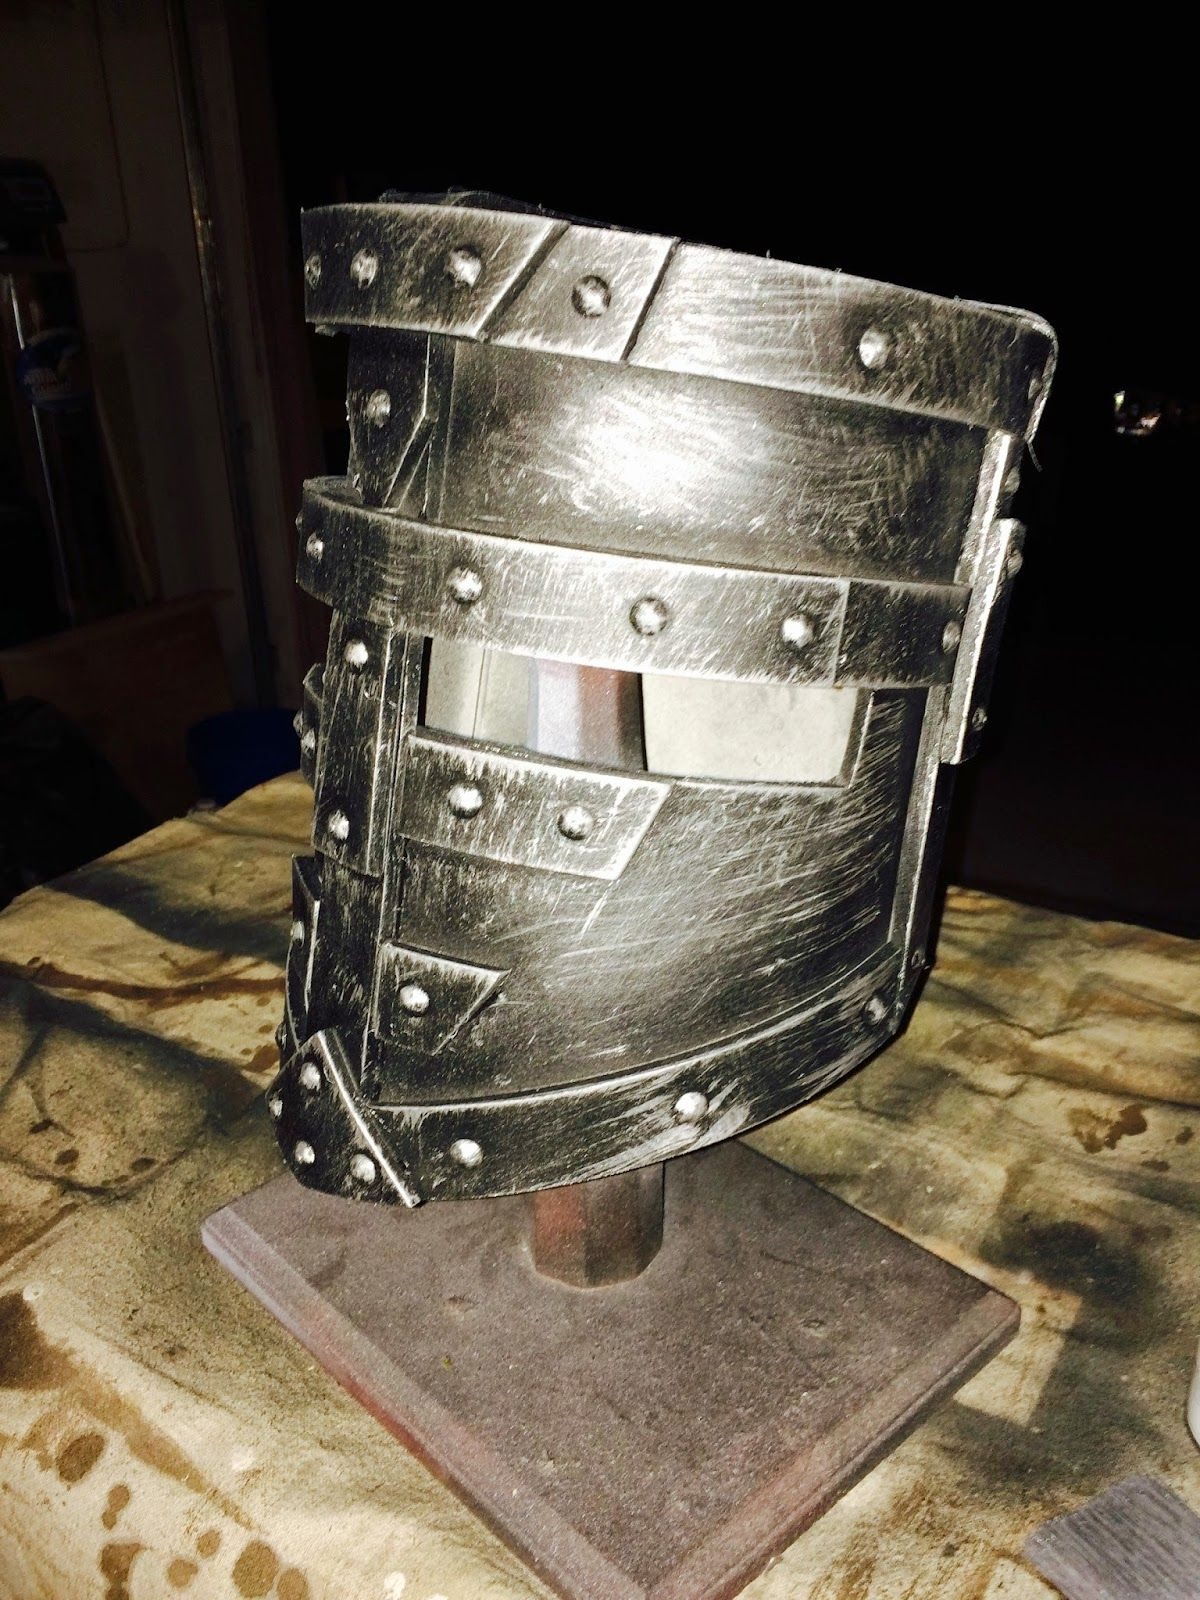 A few years back I made some Sci fi Body Armor out of foam